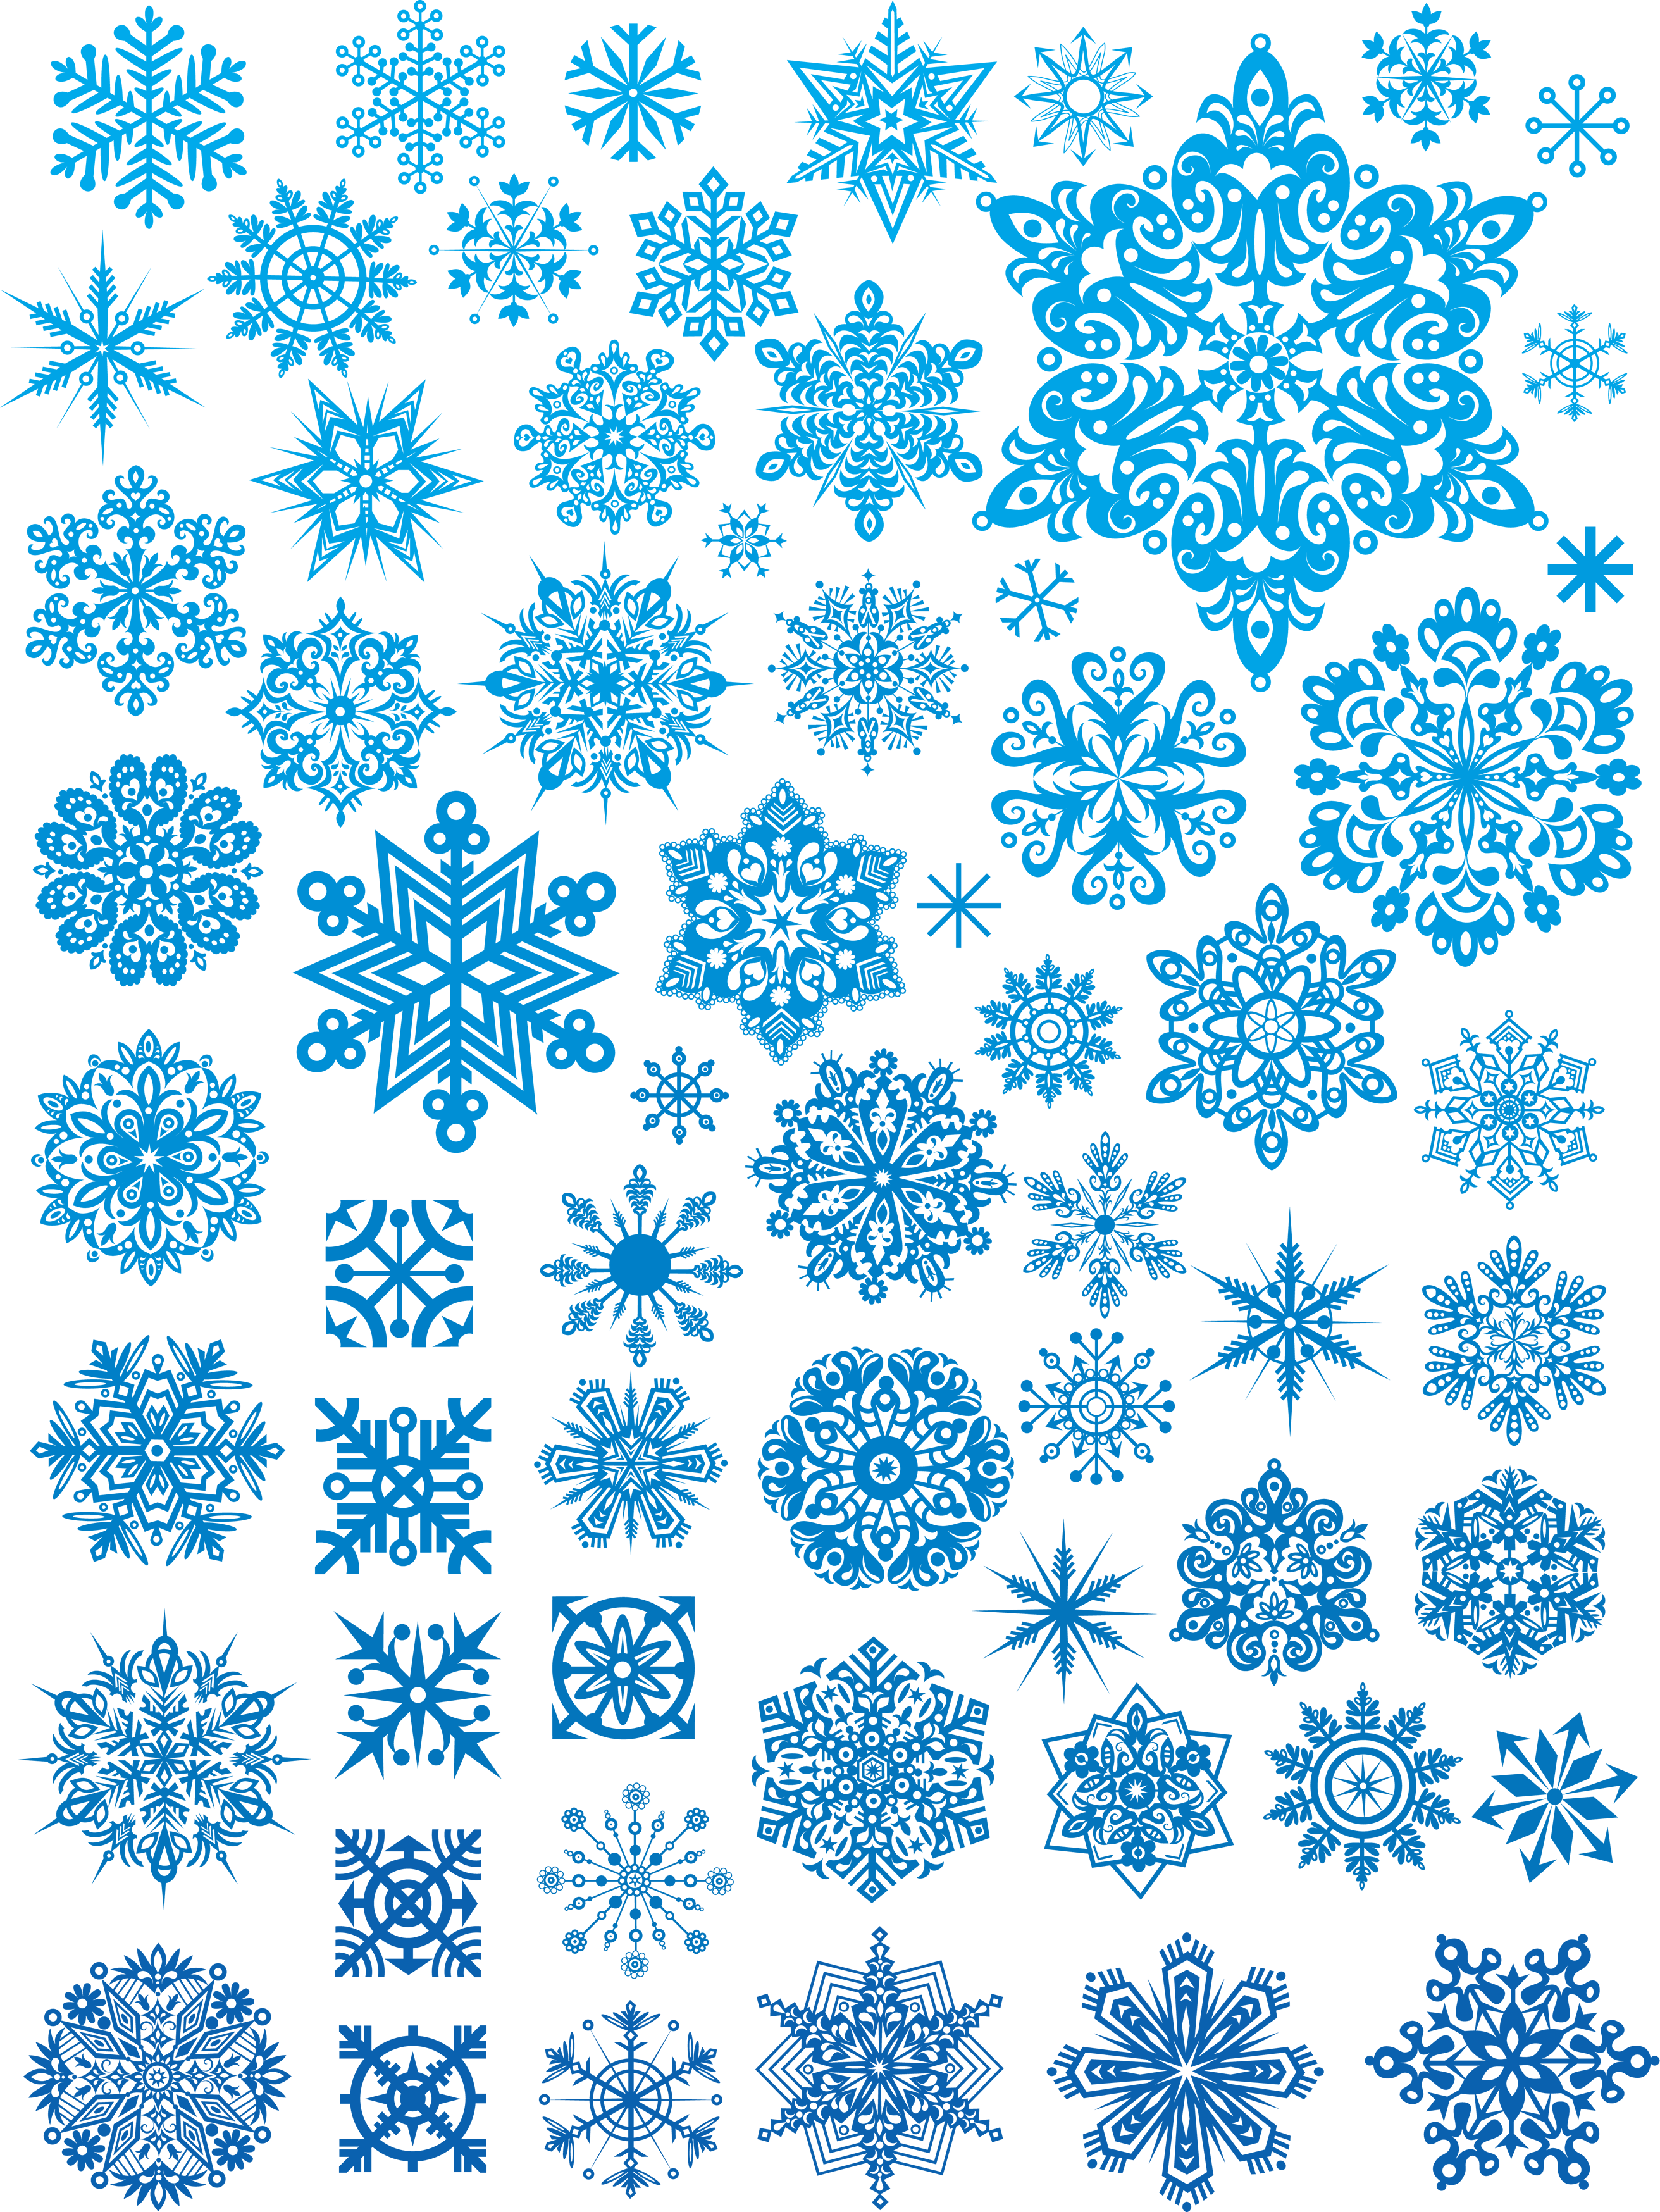 Winter clipart blizzard. Snowflakes png image christmas